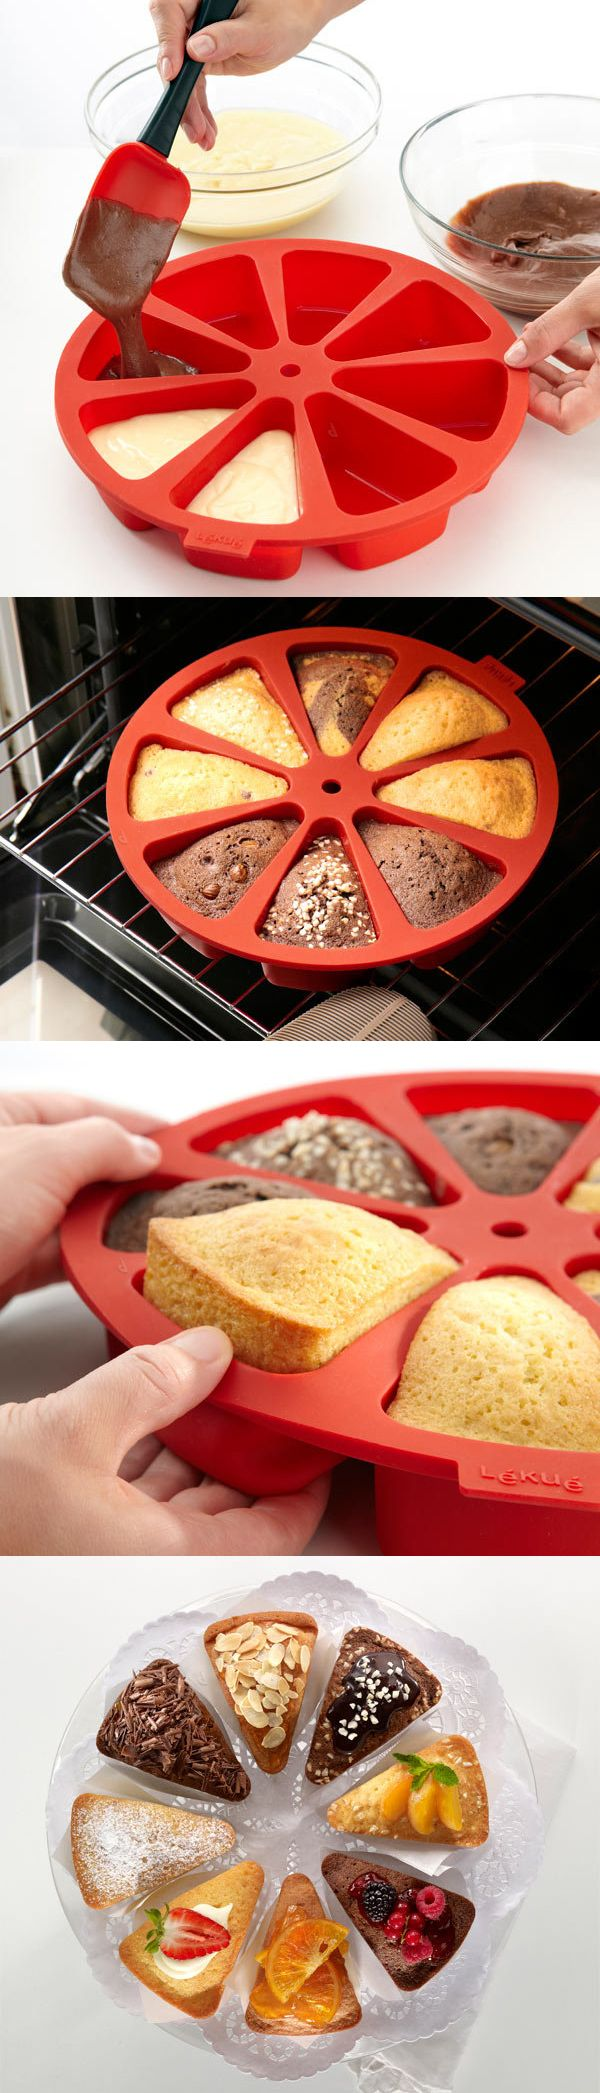 Cake mold for individual slices #product_design #baking @yieldedheart I waaaaaaaant!